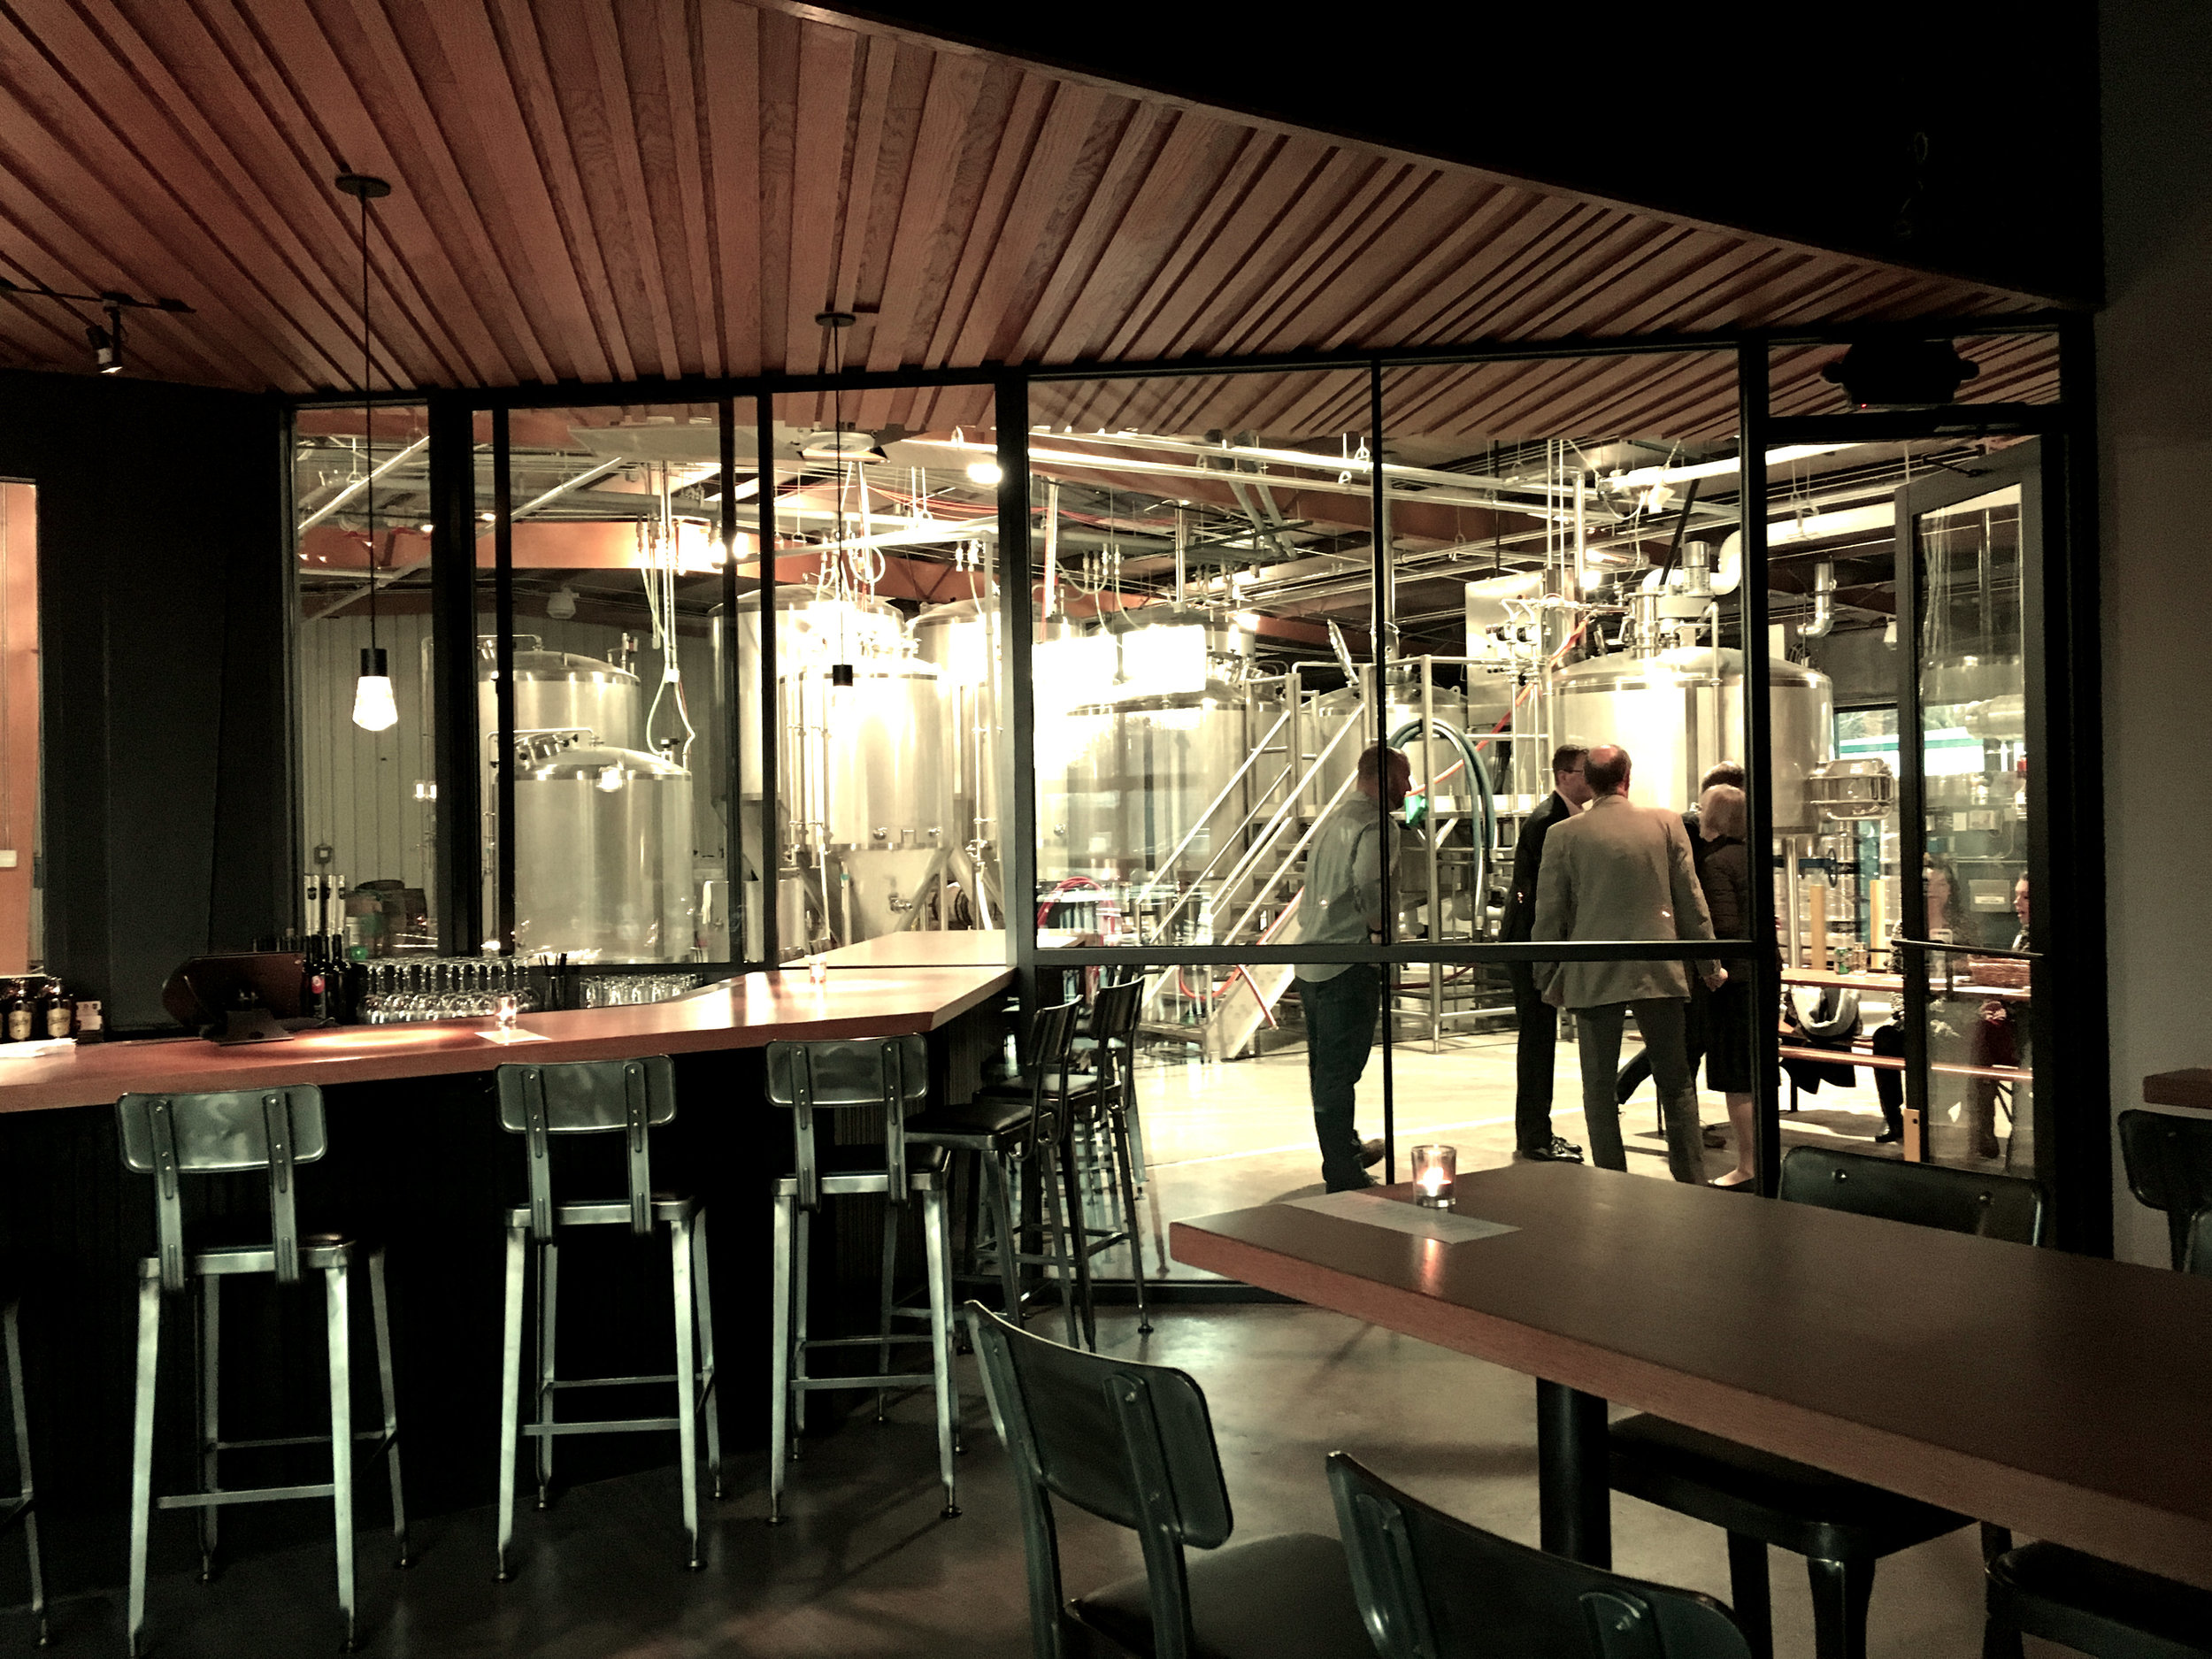 Connection between the taproom and brewery spaces.